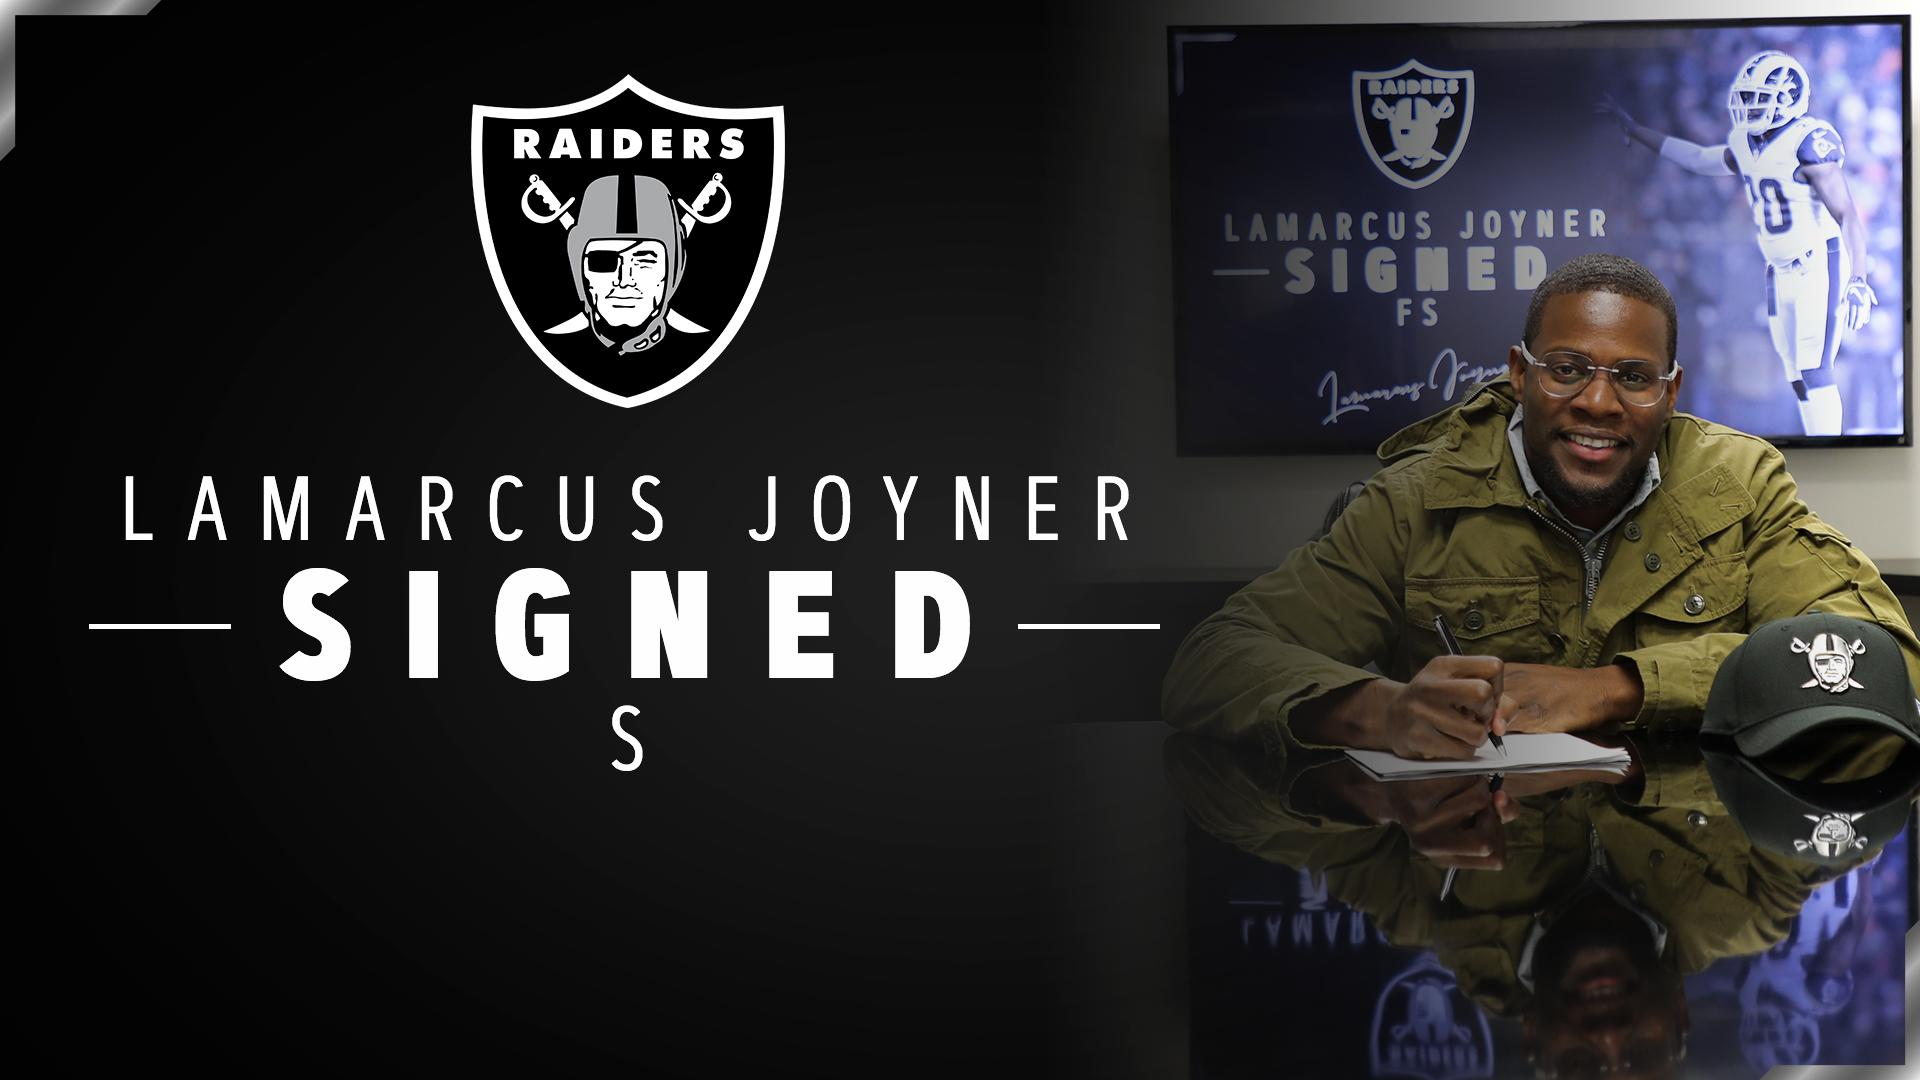 Didn't forget about the defense.  We have signed safety Lamarcus Joyner: https://t.co/64qZKdGIVm #RaiderNation https://t.co/OuviS4MkBr